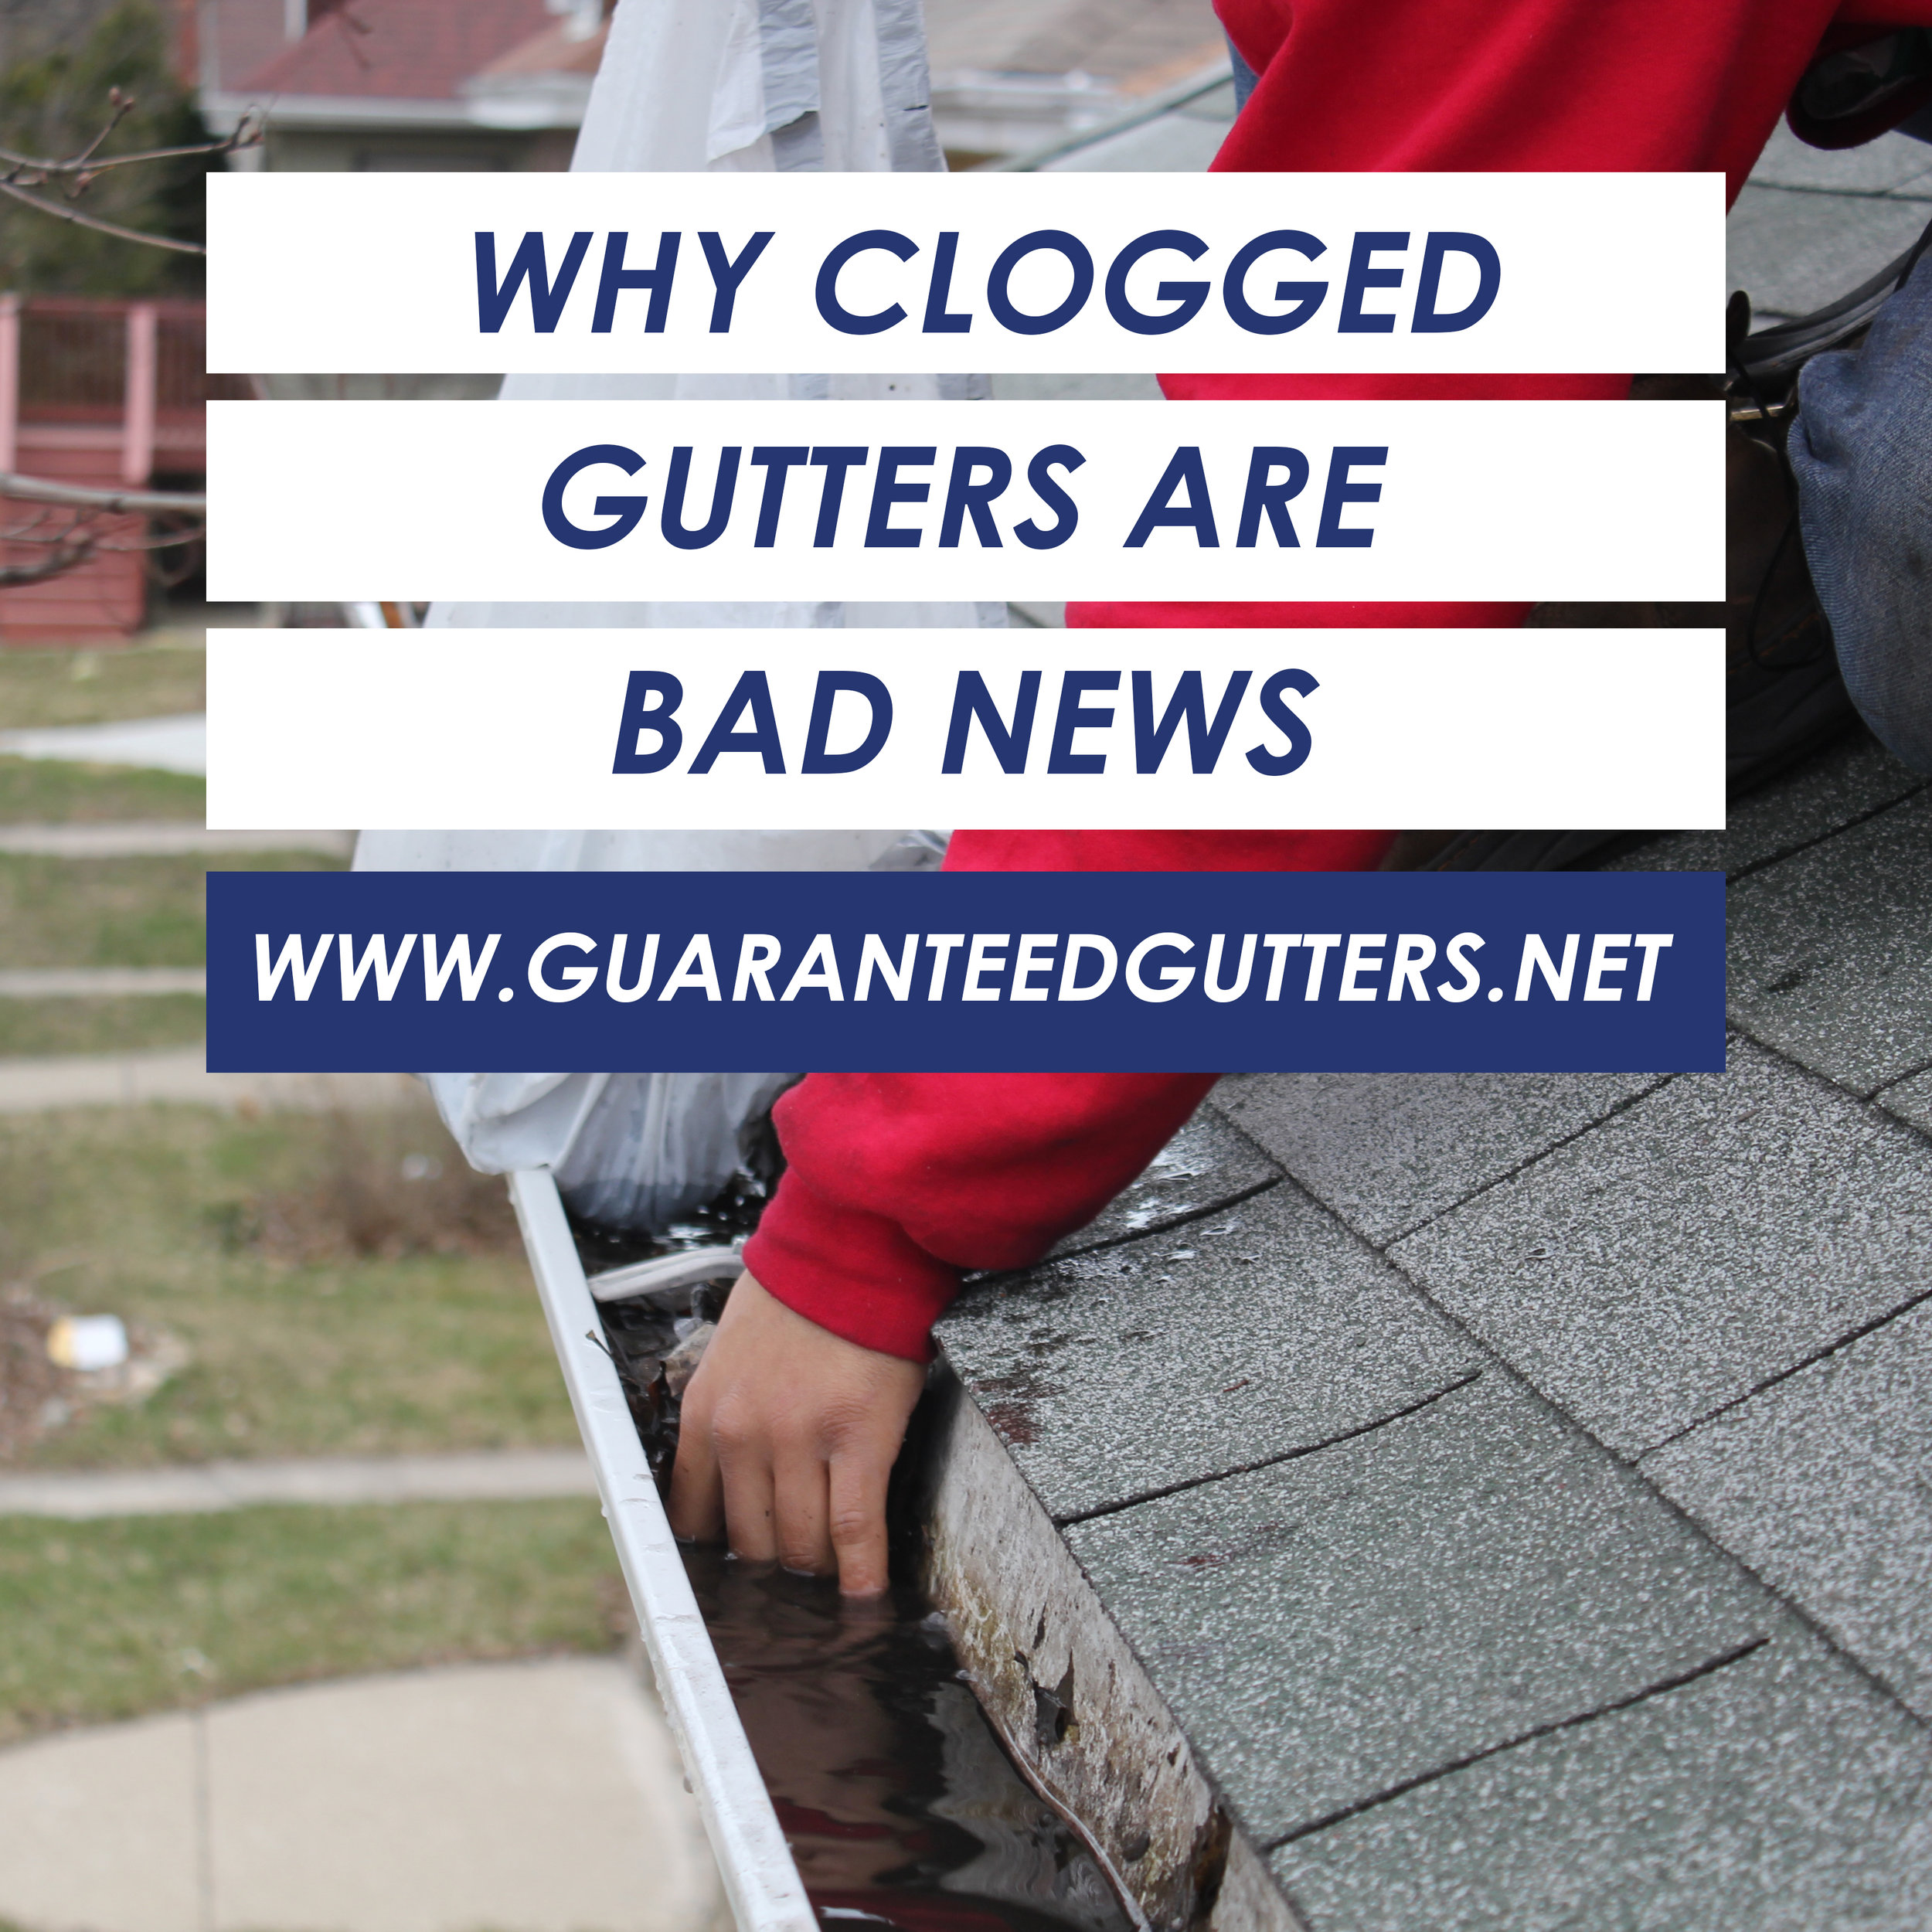 Why Clogged Gutters Are Bad News.jpg